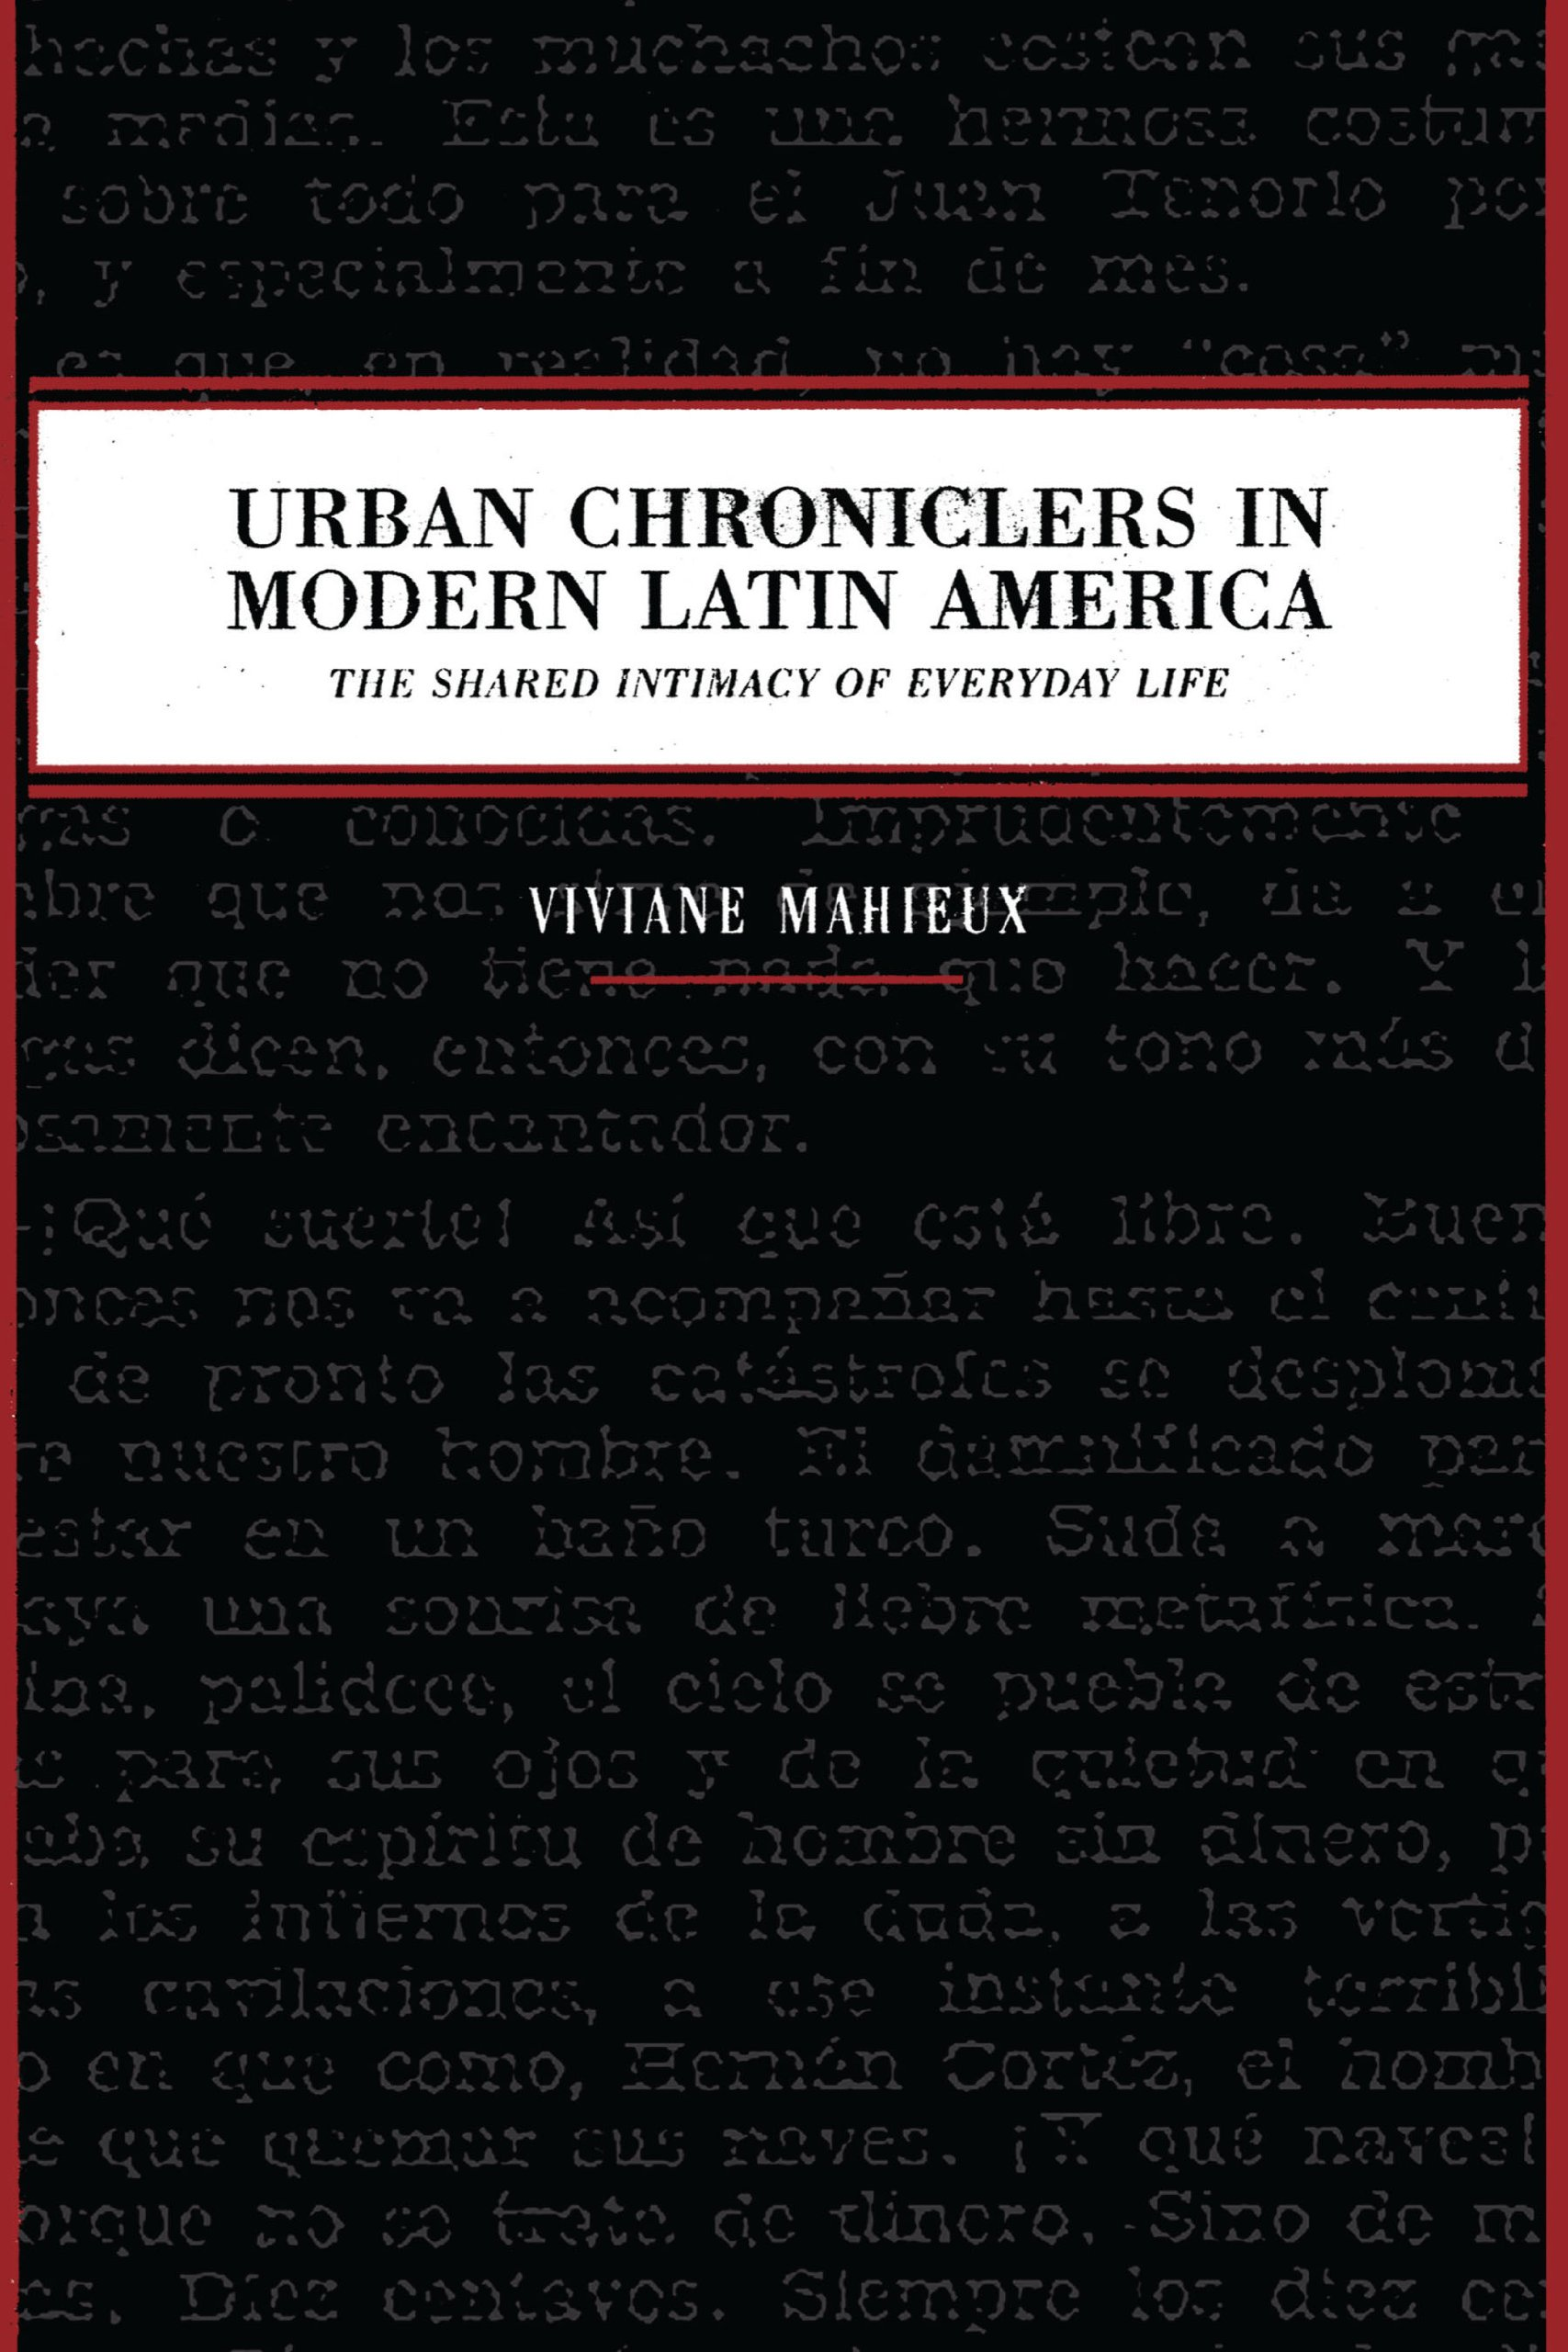 Urban Chroniclers in Modern Latin America: The Shared Intimacy of Everyday Life (Joe R. and Teresa Lozano Long Series in Latin American and Latino Art and Culture) pdf